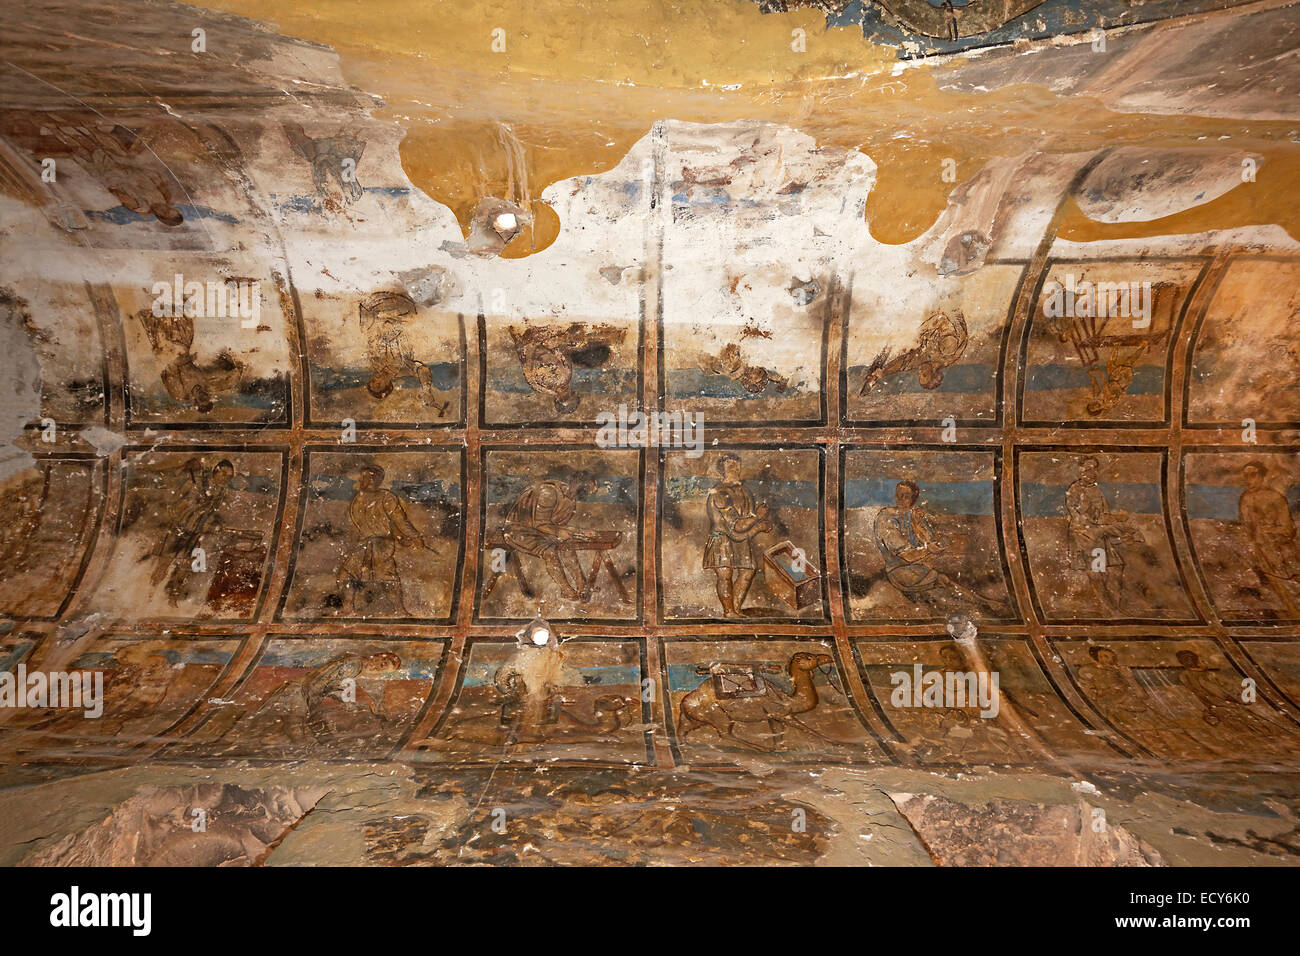 Frescoes, wall paintings, bathhouse, desert castle Qasr Amra or Qusaie Amra, Red Palace, UNESCO World Heritage Site, - Stock Image